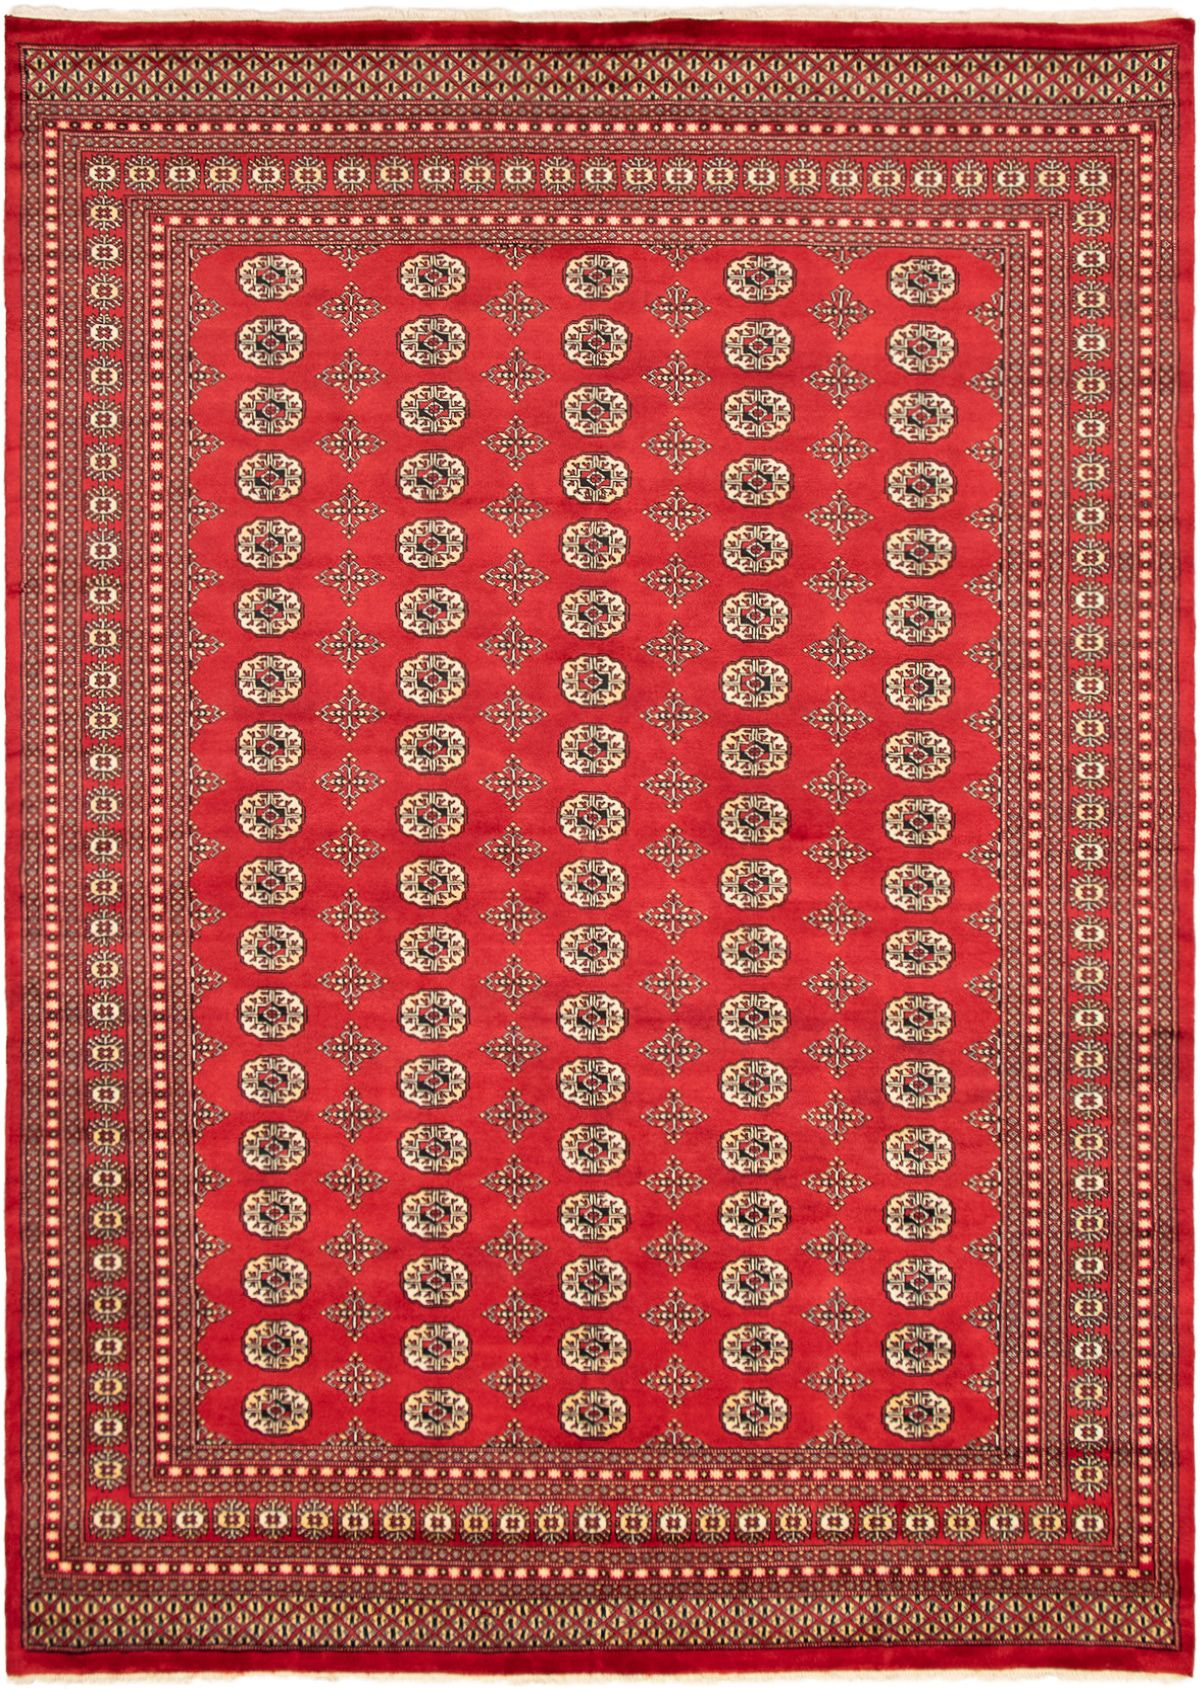 "Hand-knotted Finest Peshawar Bokhara Red Wool Rug 8'2"" x 9'5"" Product Image"